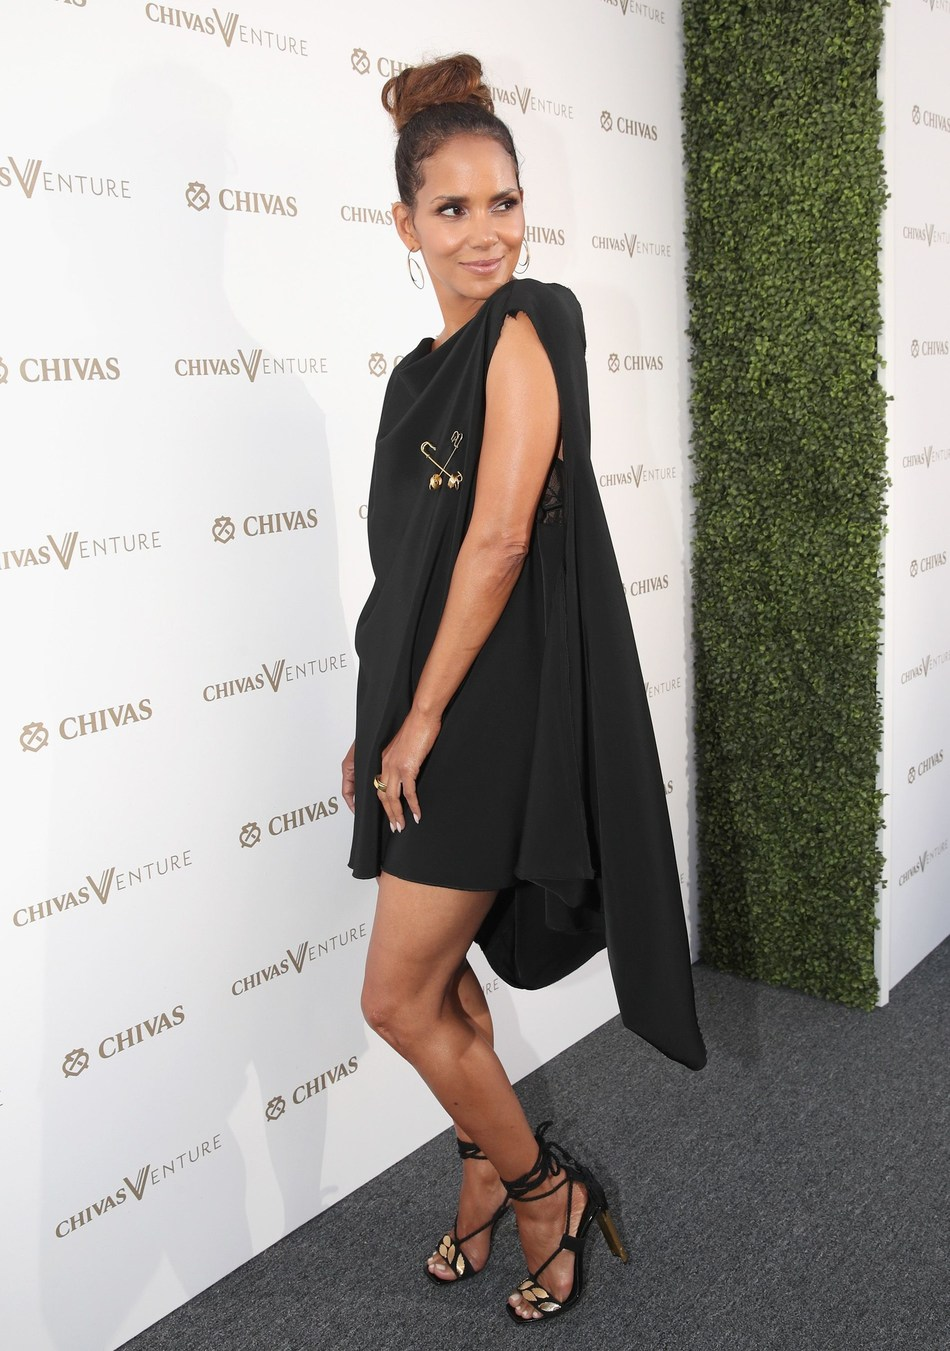 LOS ANGELES, CA - JULY 13:  Actor Halle Berry at The Chivas Venture $1m Global Startup Competition at LADC Studios on July 13, 2017 in Los Angeles, California.  (Photo by Christopher Polk/Getty Images for Chivas Regal) (PRNewsfoto/Chivas Venture)